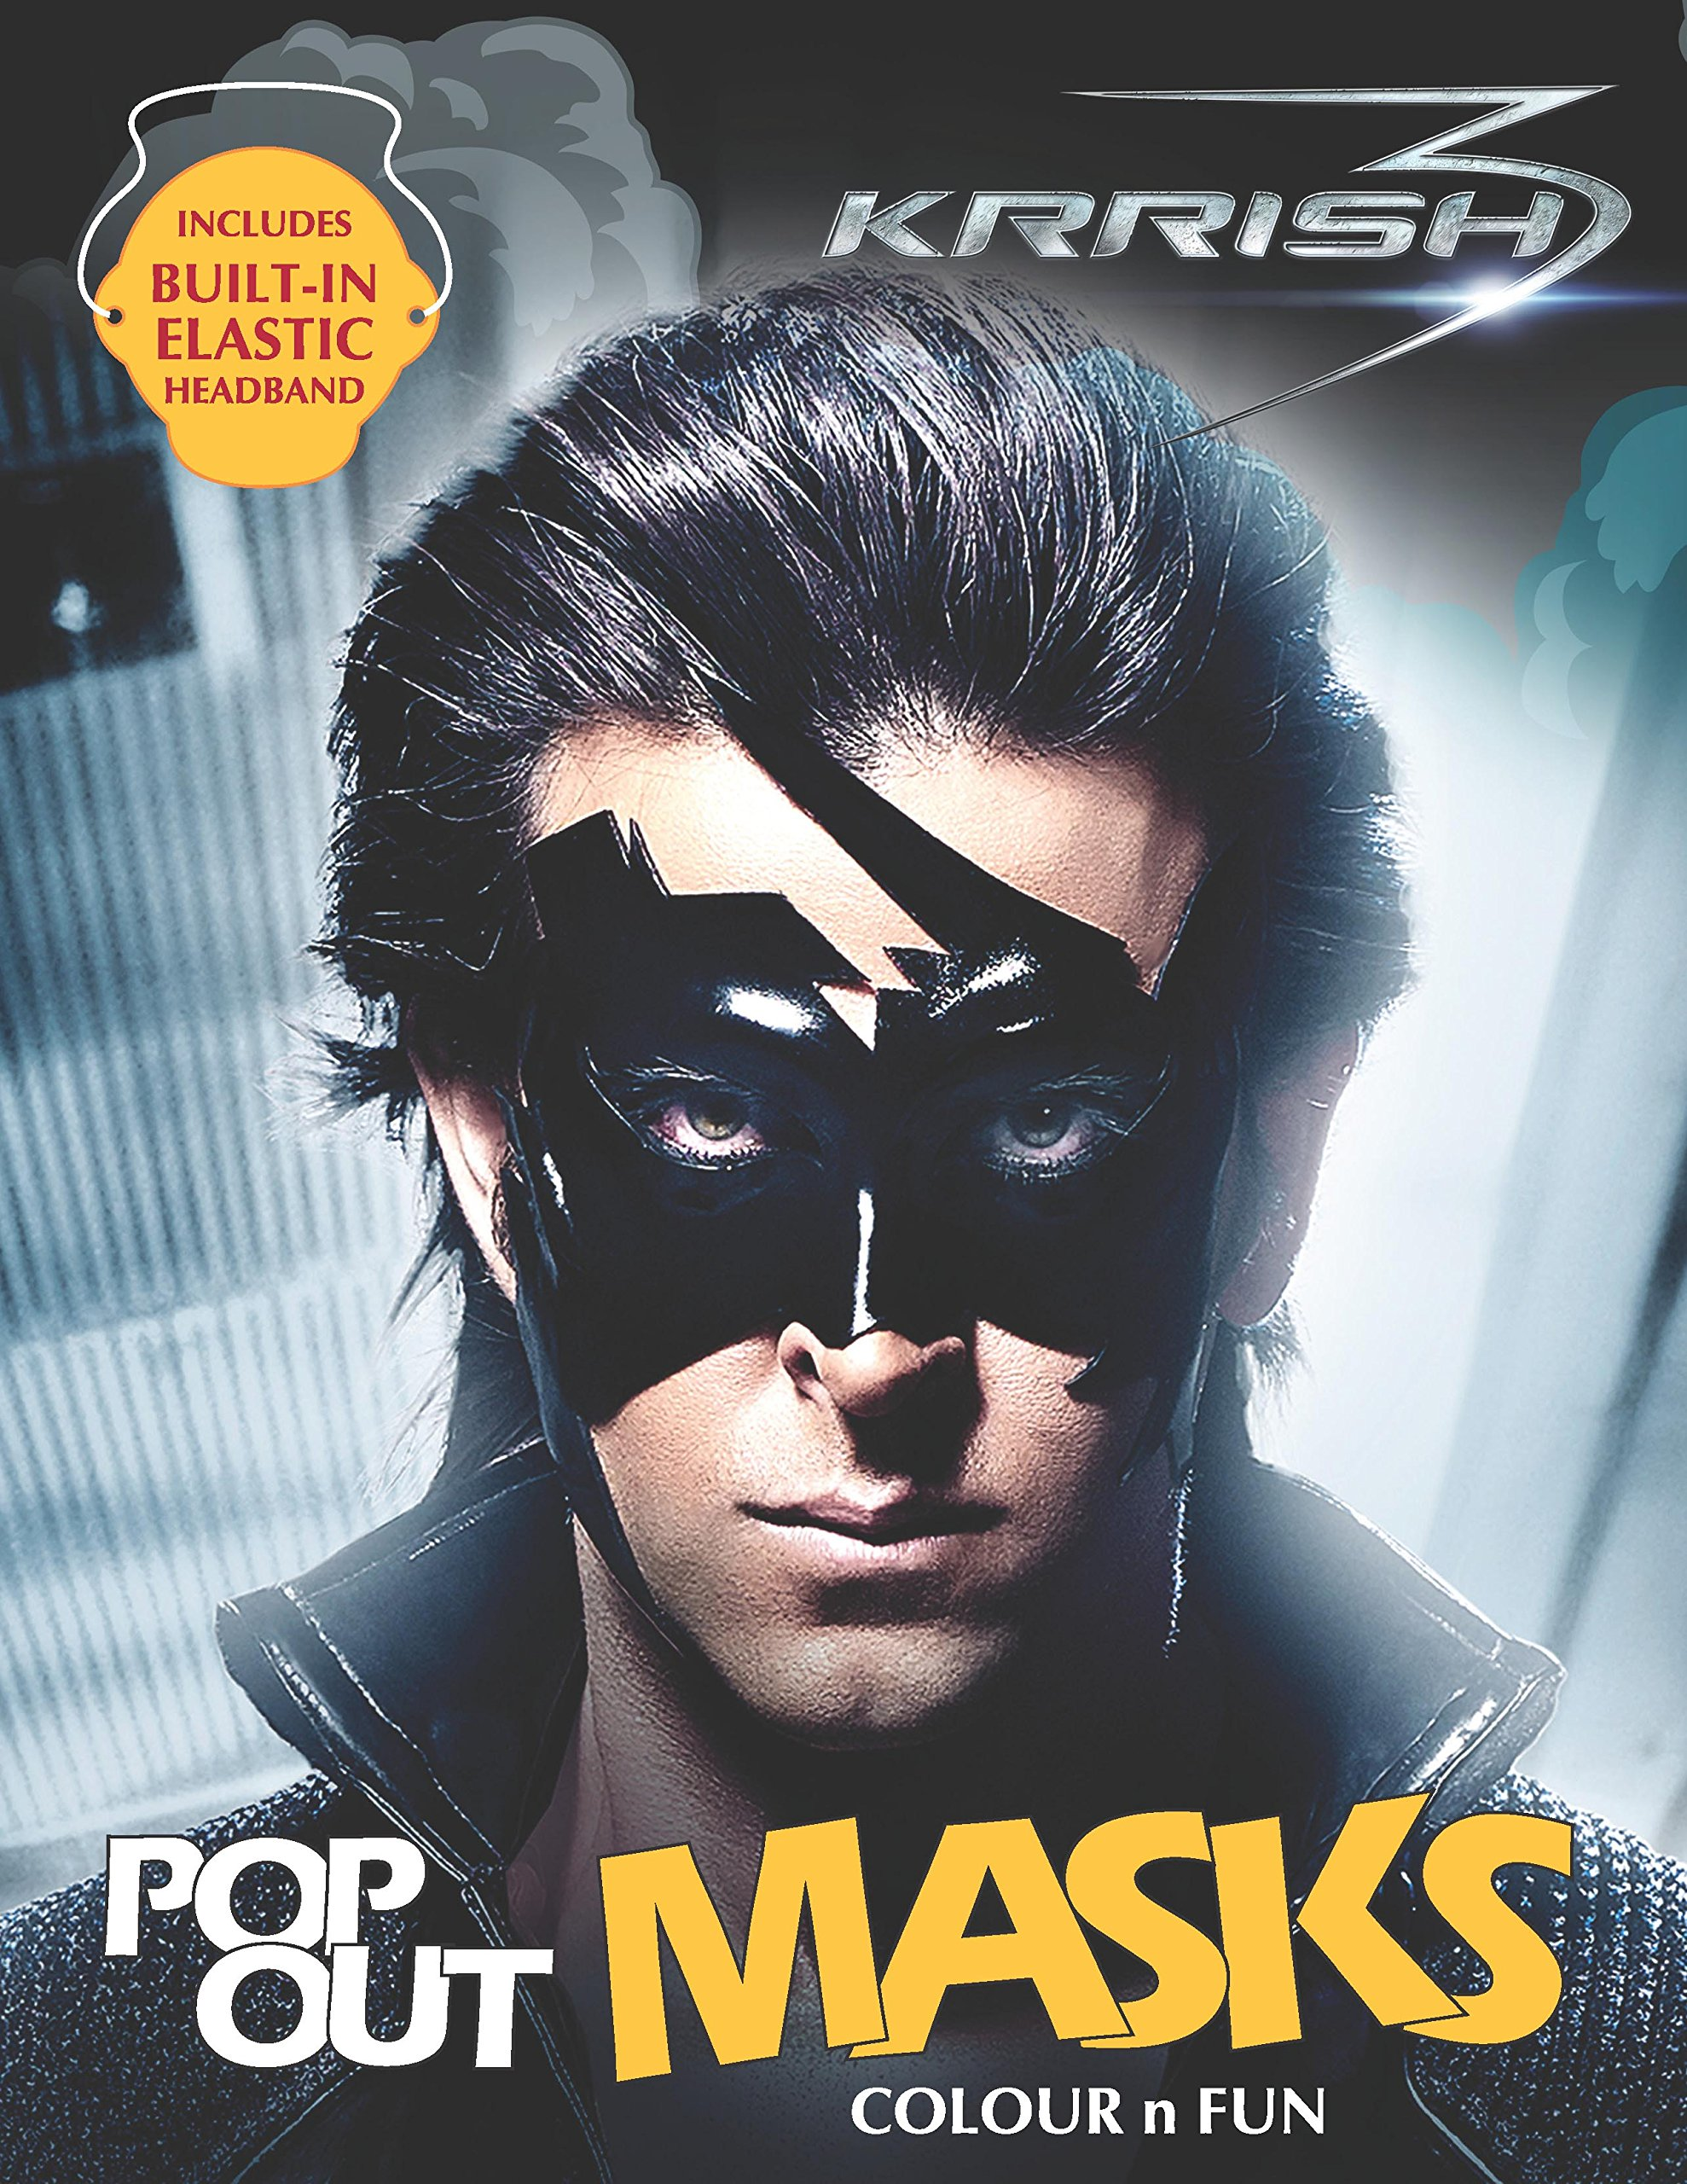 Buy Krrish Mask Book Colour Fun Online At Low Prices In India